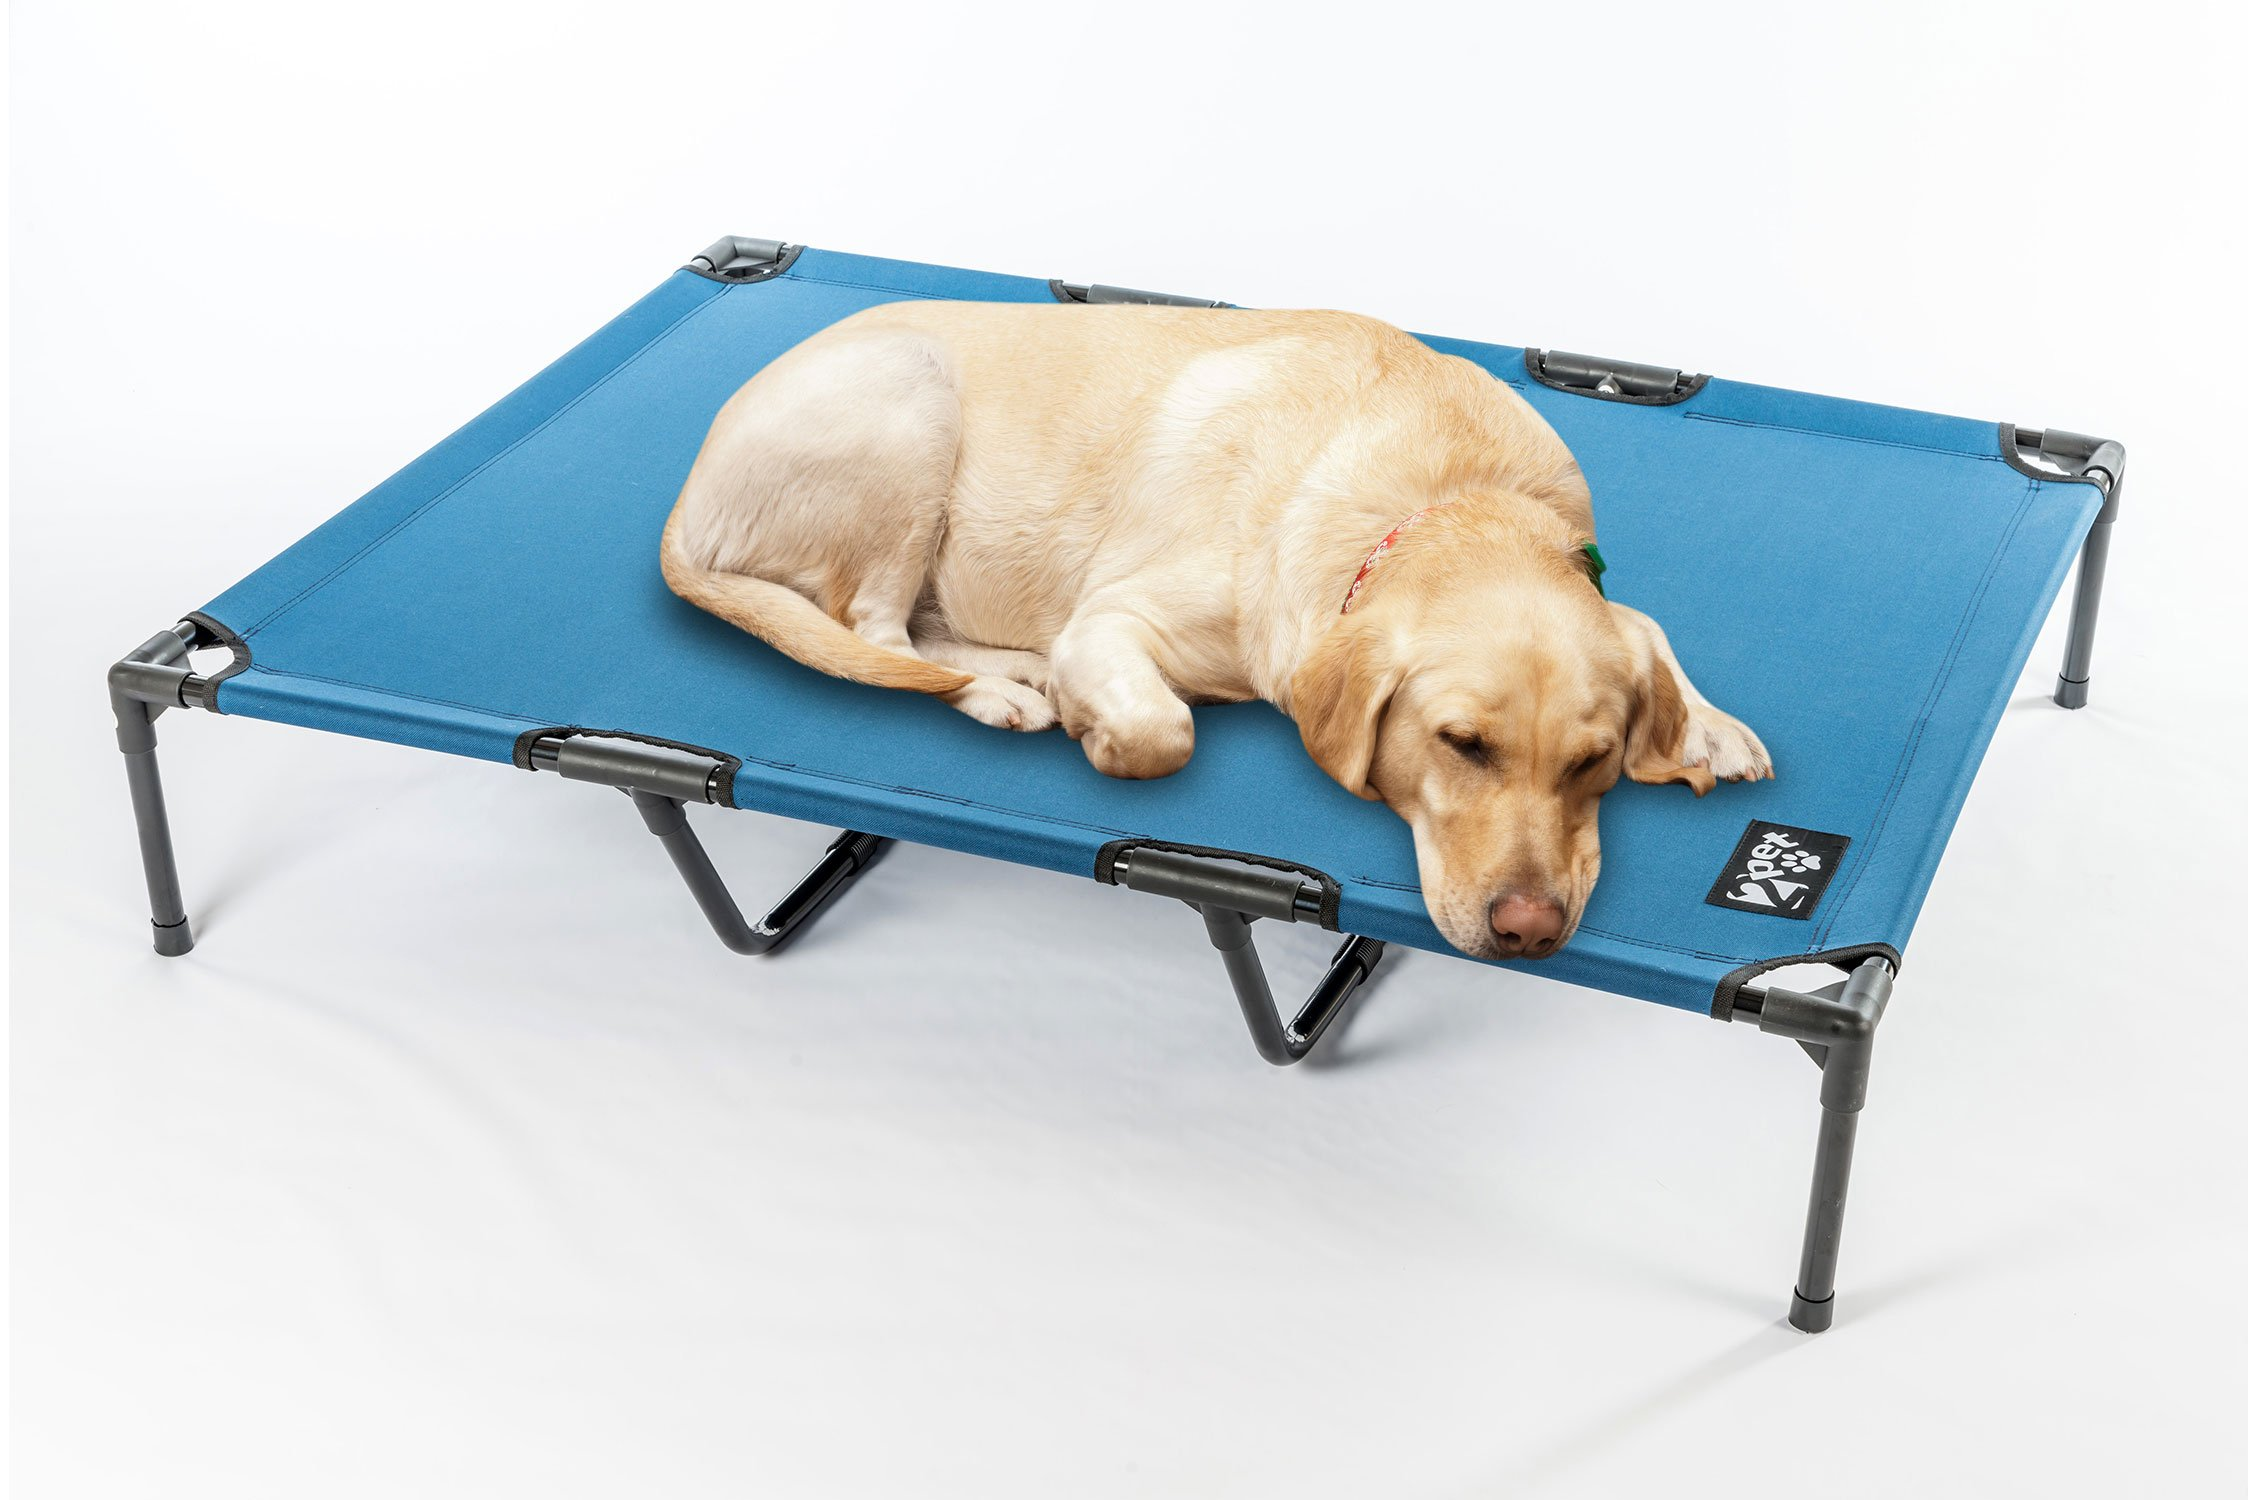 2PET Elevated Cooling Pet Bed, Pet Cot, Dog Bed with Breathable Mesh Fabric, Orthopedic, Easy Clean for Small, Medium, Large, Extra Large All Breeds and New Improved Nylon 1680D XL-Blue by 2PET